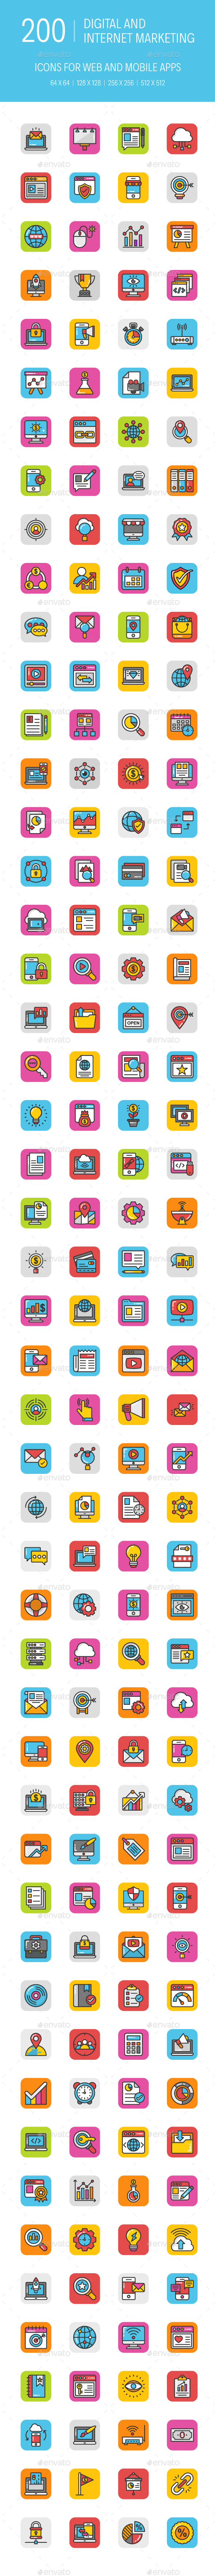 GraphicRiver 200 Digital Internet Marketing Icons 20947755